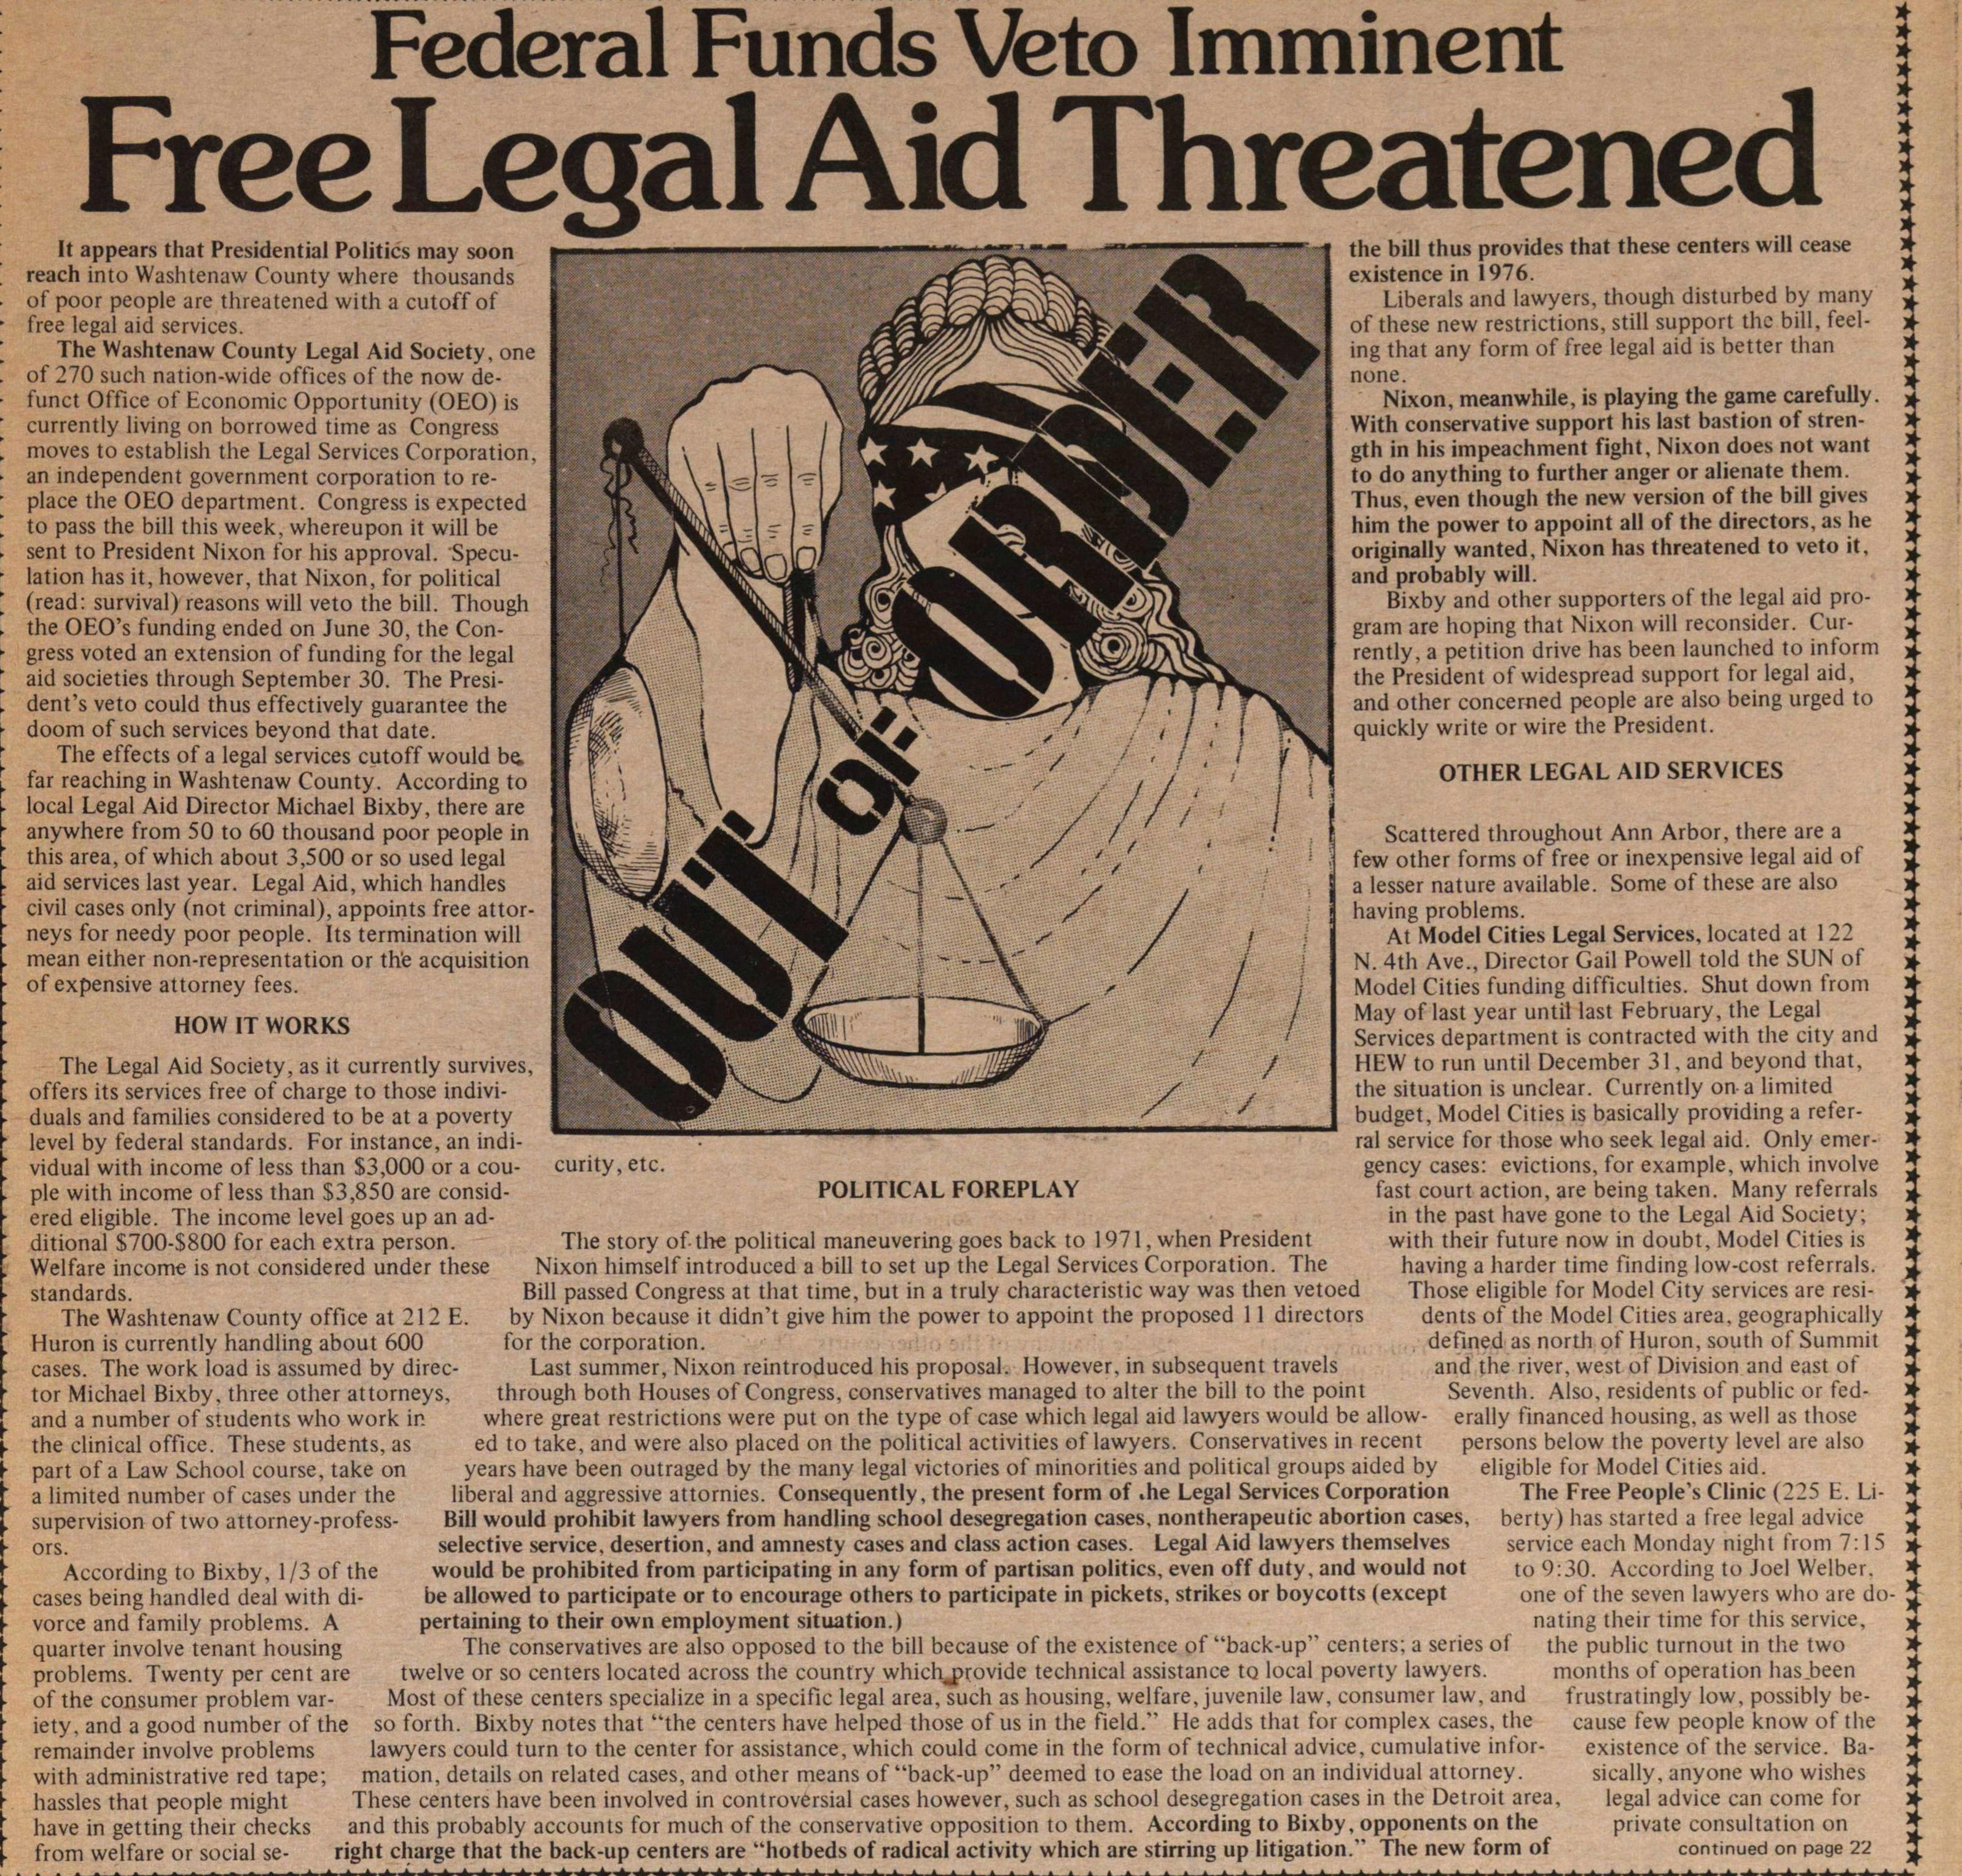 Federal Funds Veto Imminent Free Legal Aid Threatened image